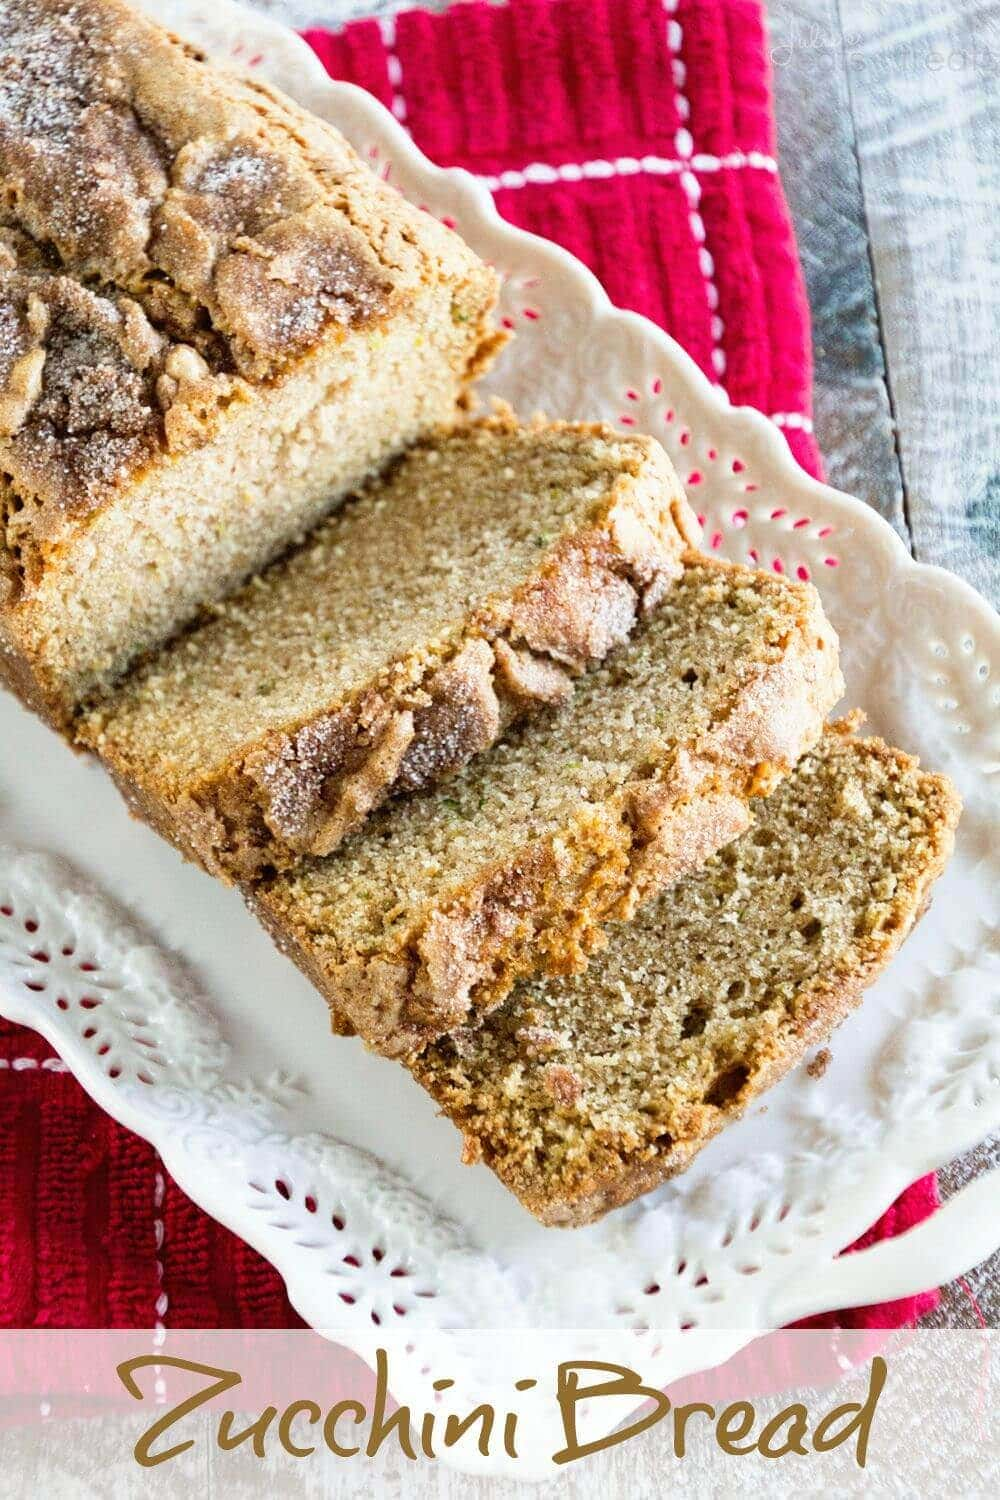 Zucchini Bread ~ Delicious, Comforting Zucchini Bread Recipe Straight from Grandma's Recipe Box! Moist, Delicious Quick Bread Stuffed with Zucchini!